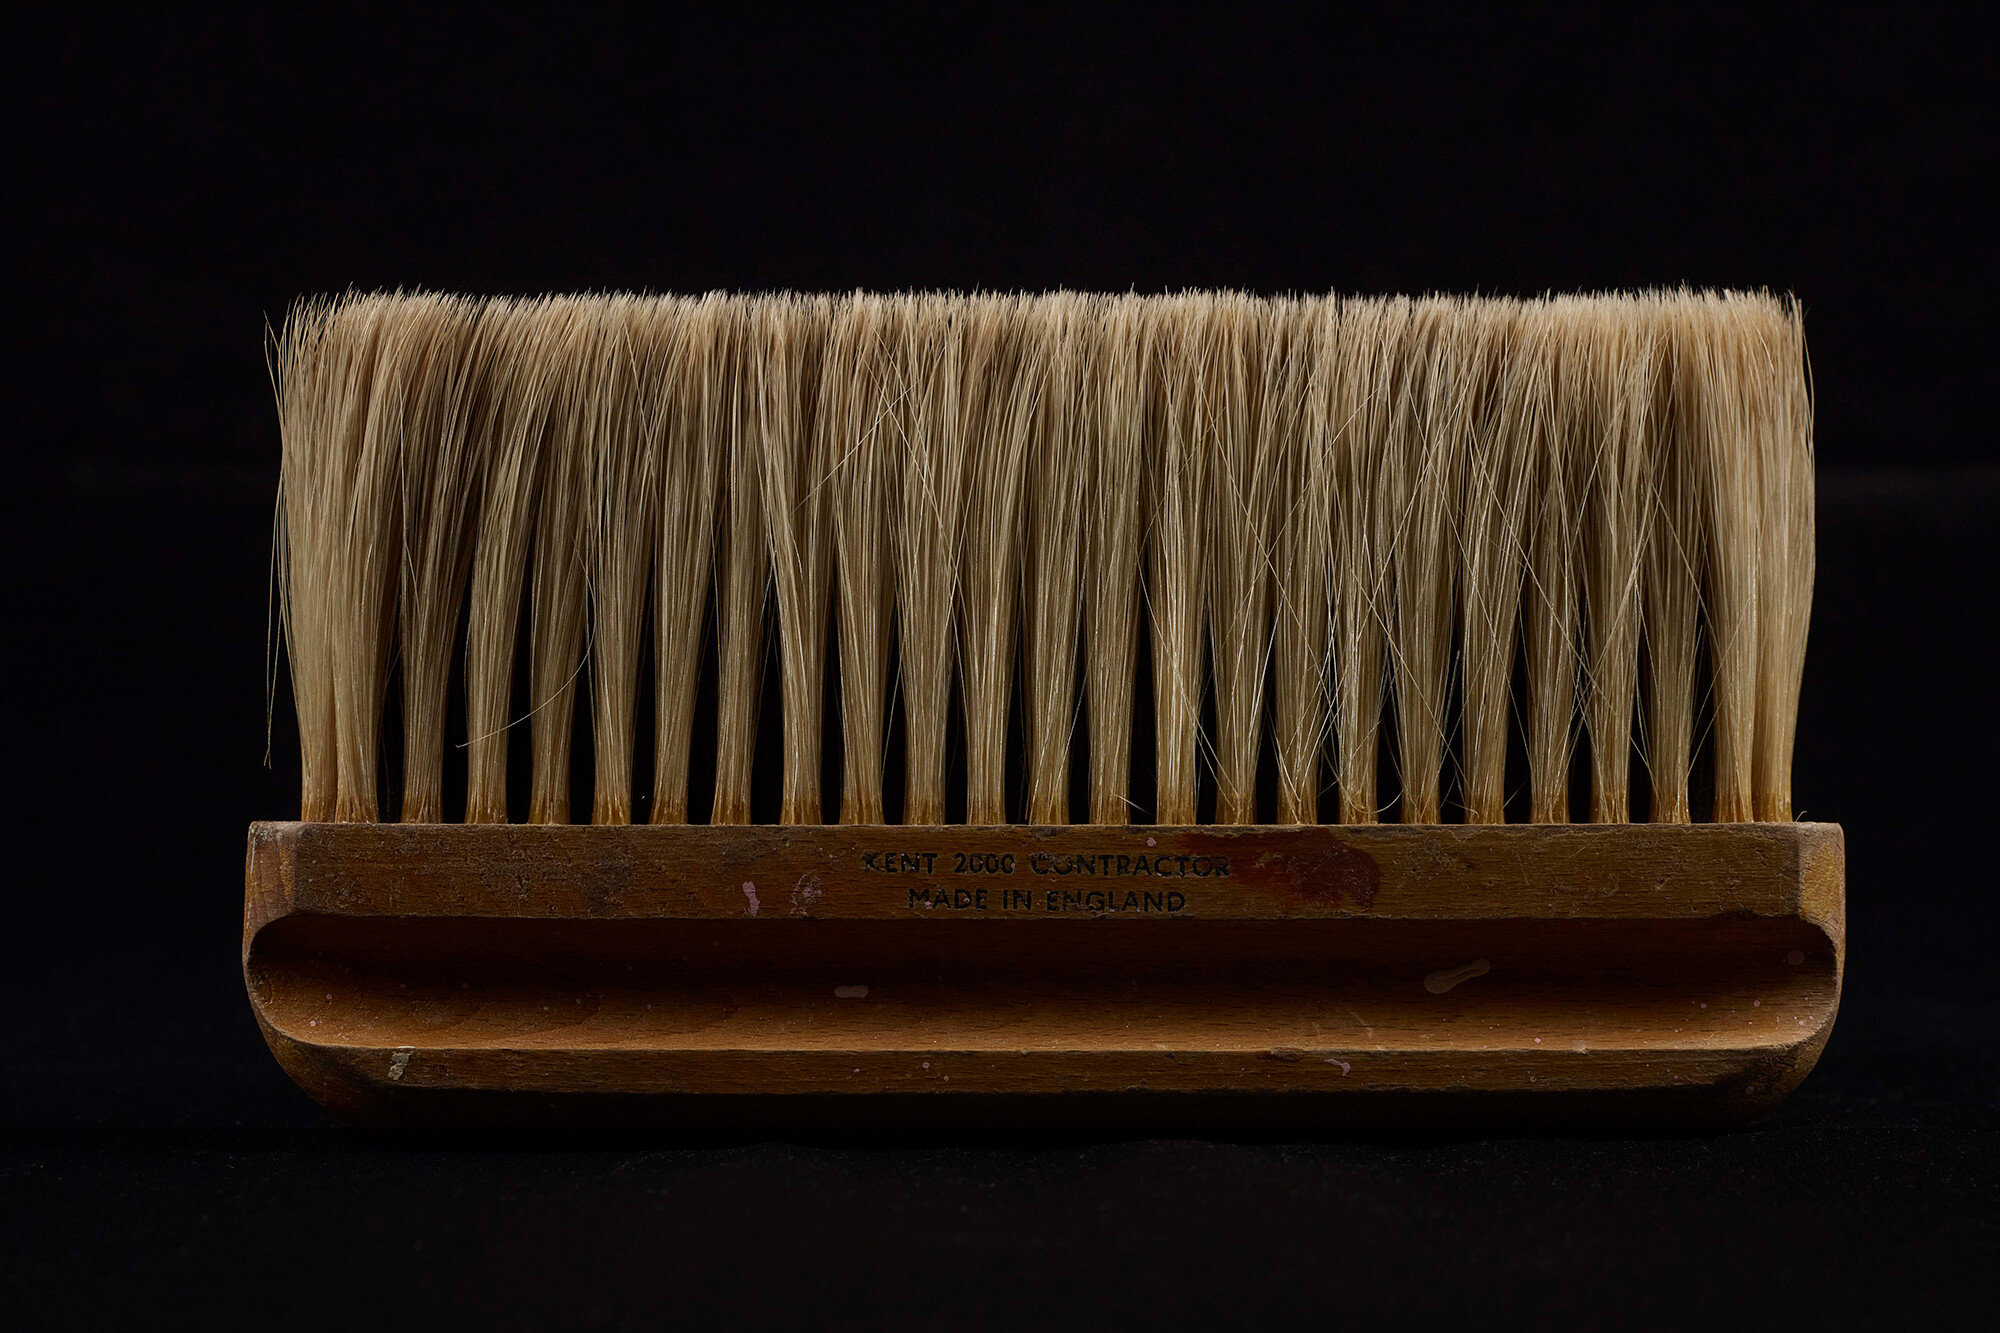 Close up image of a bristle brush on a black background